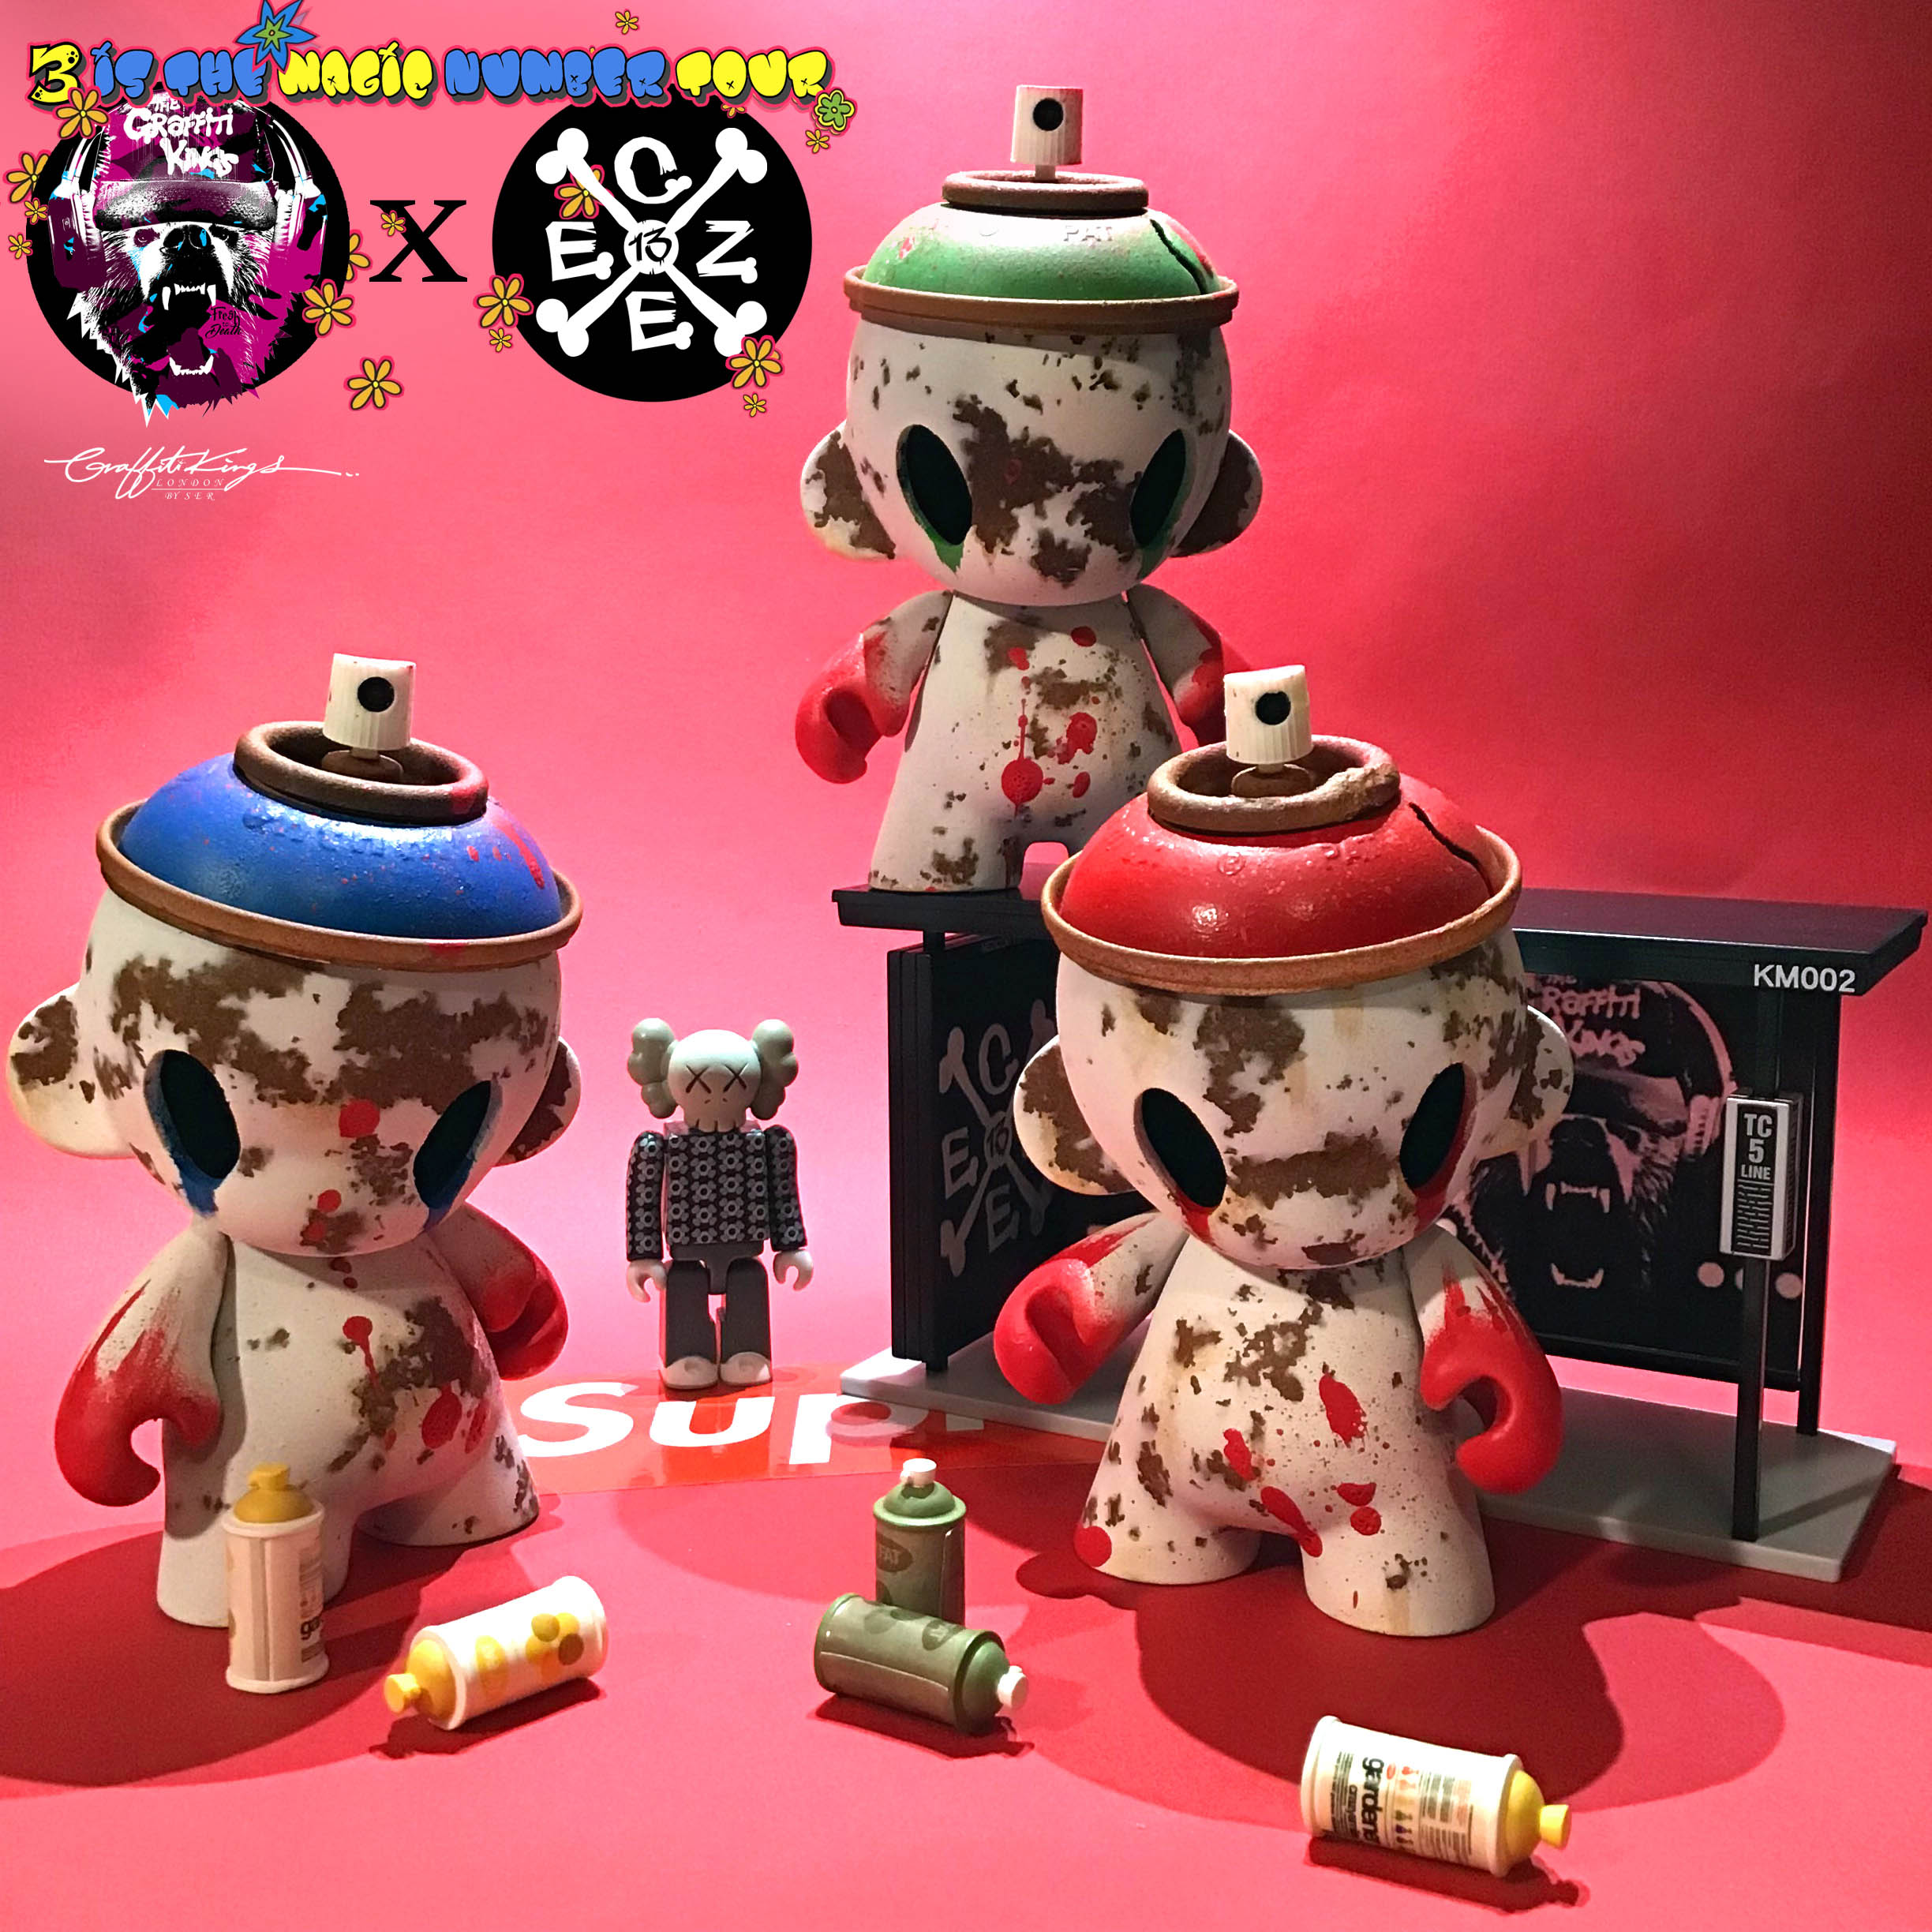 Graffiti Kings x czee13 custom designer toy 4